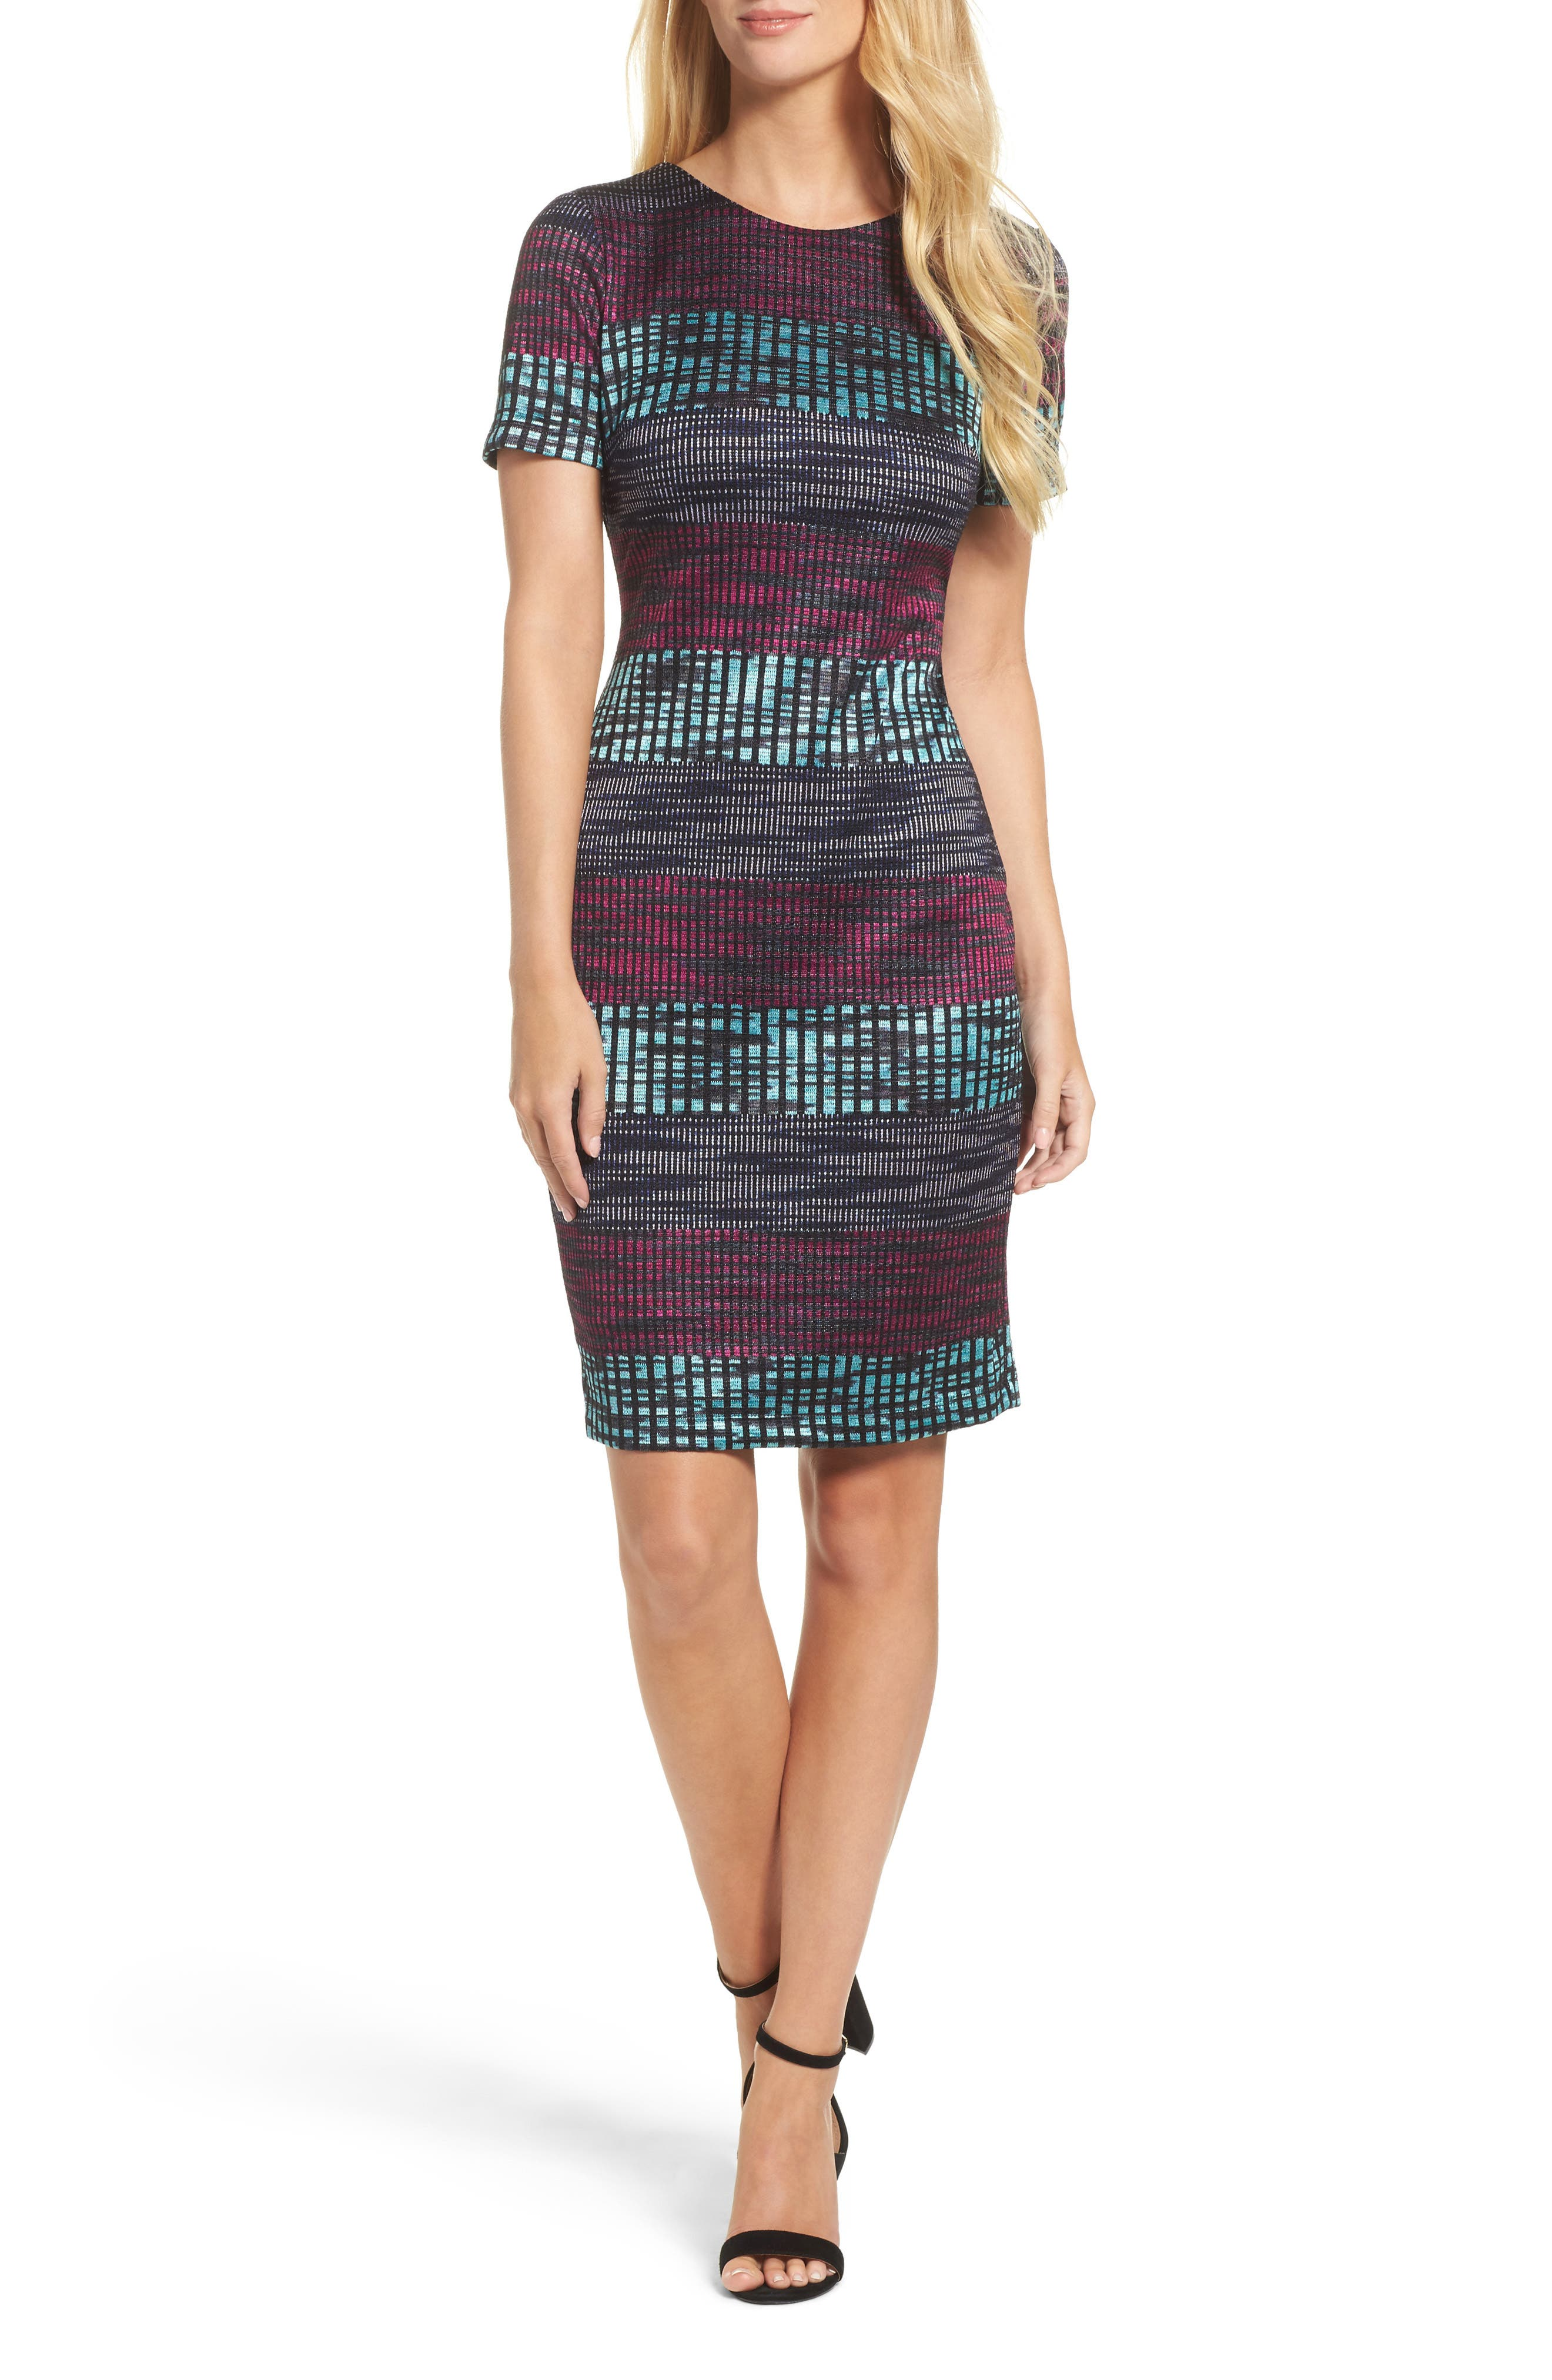 Taylor Dresses Ombré Knit Sheath Dress